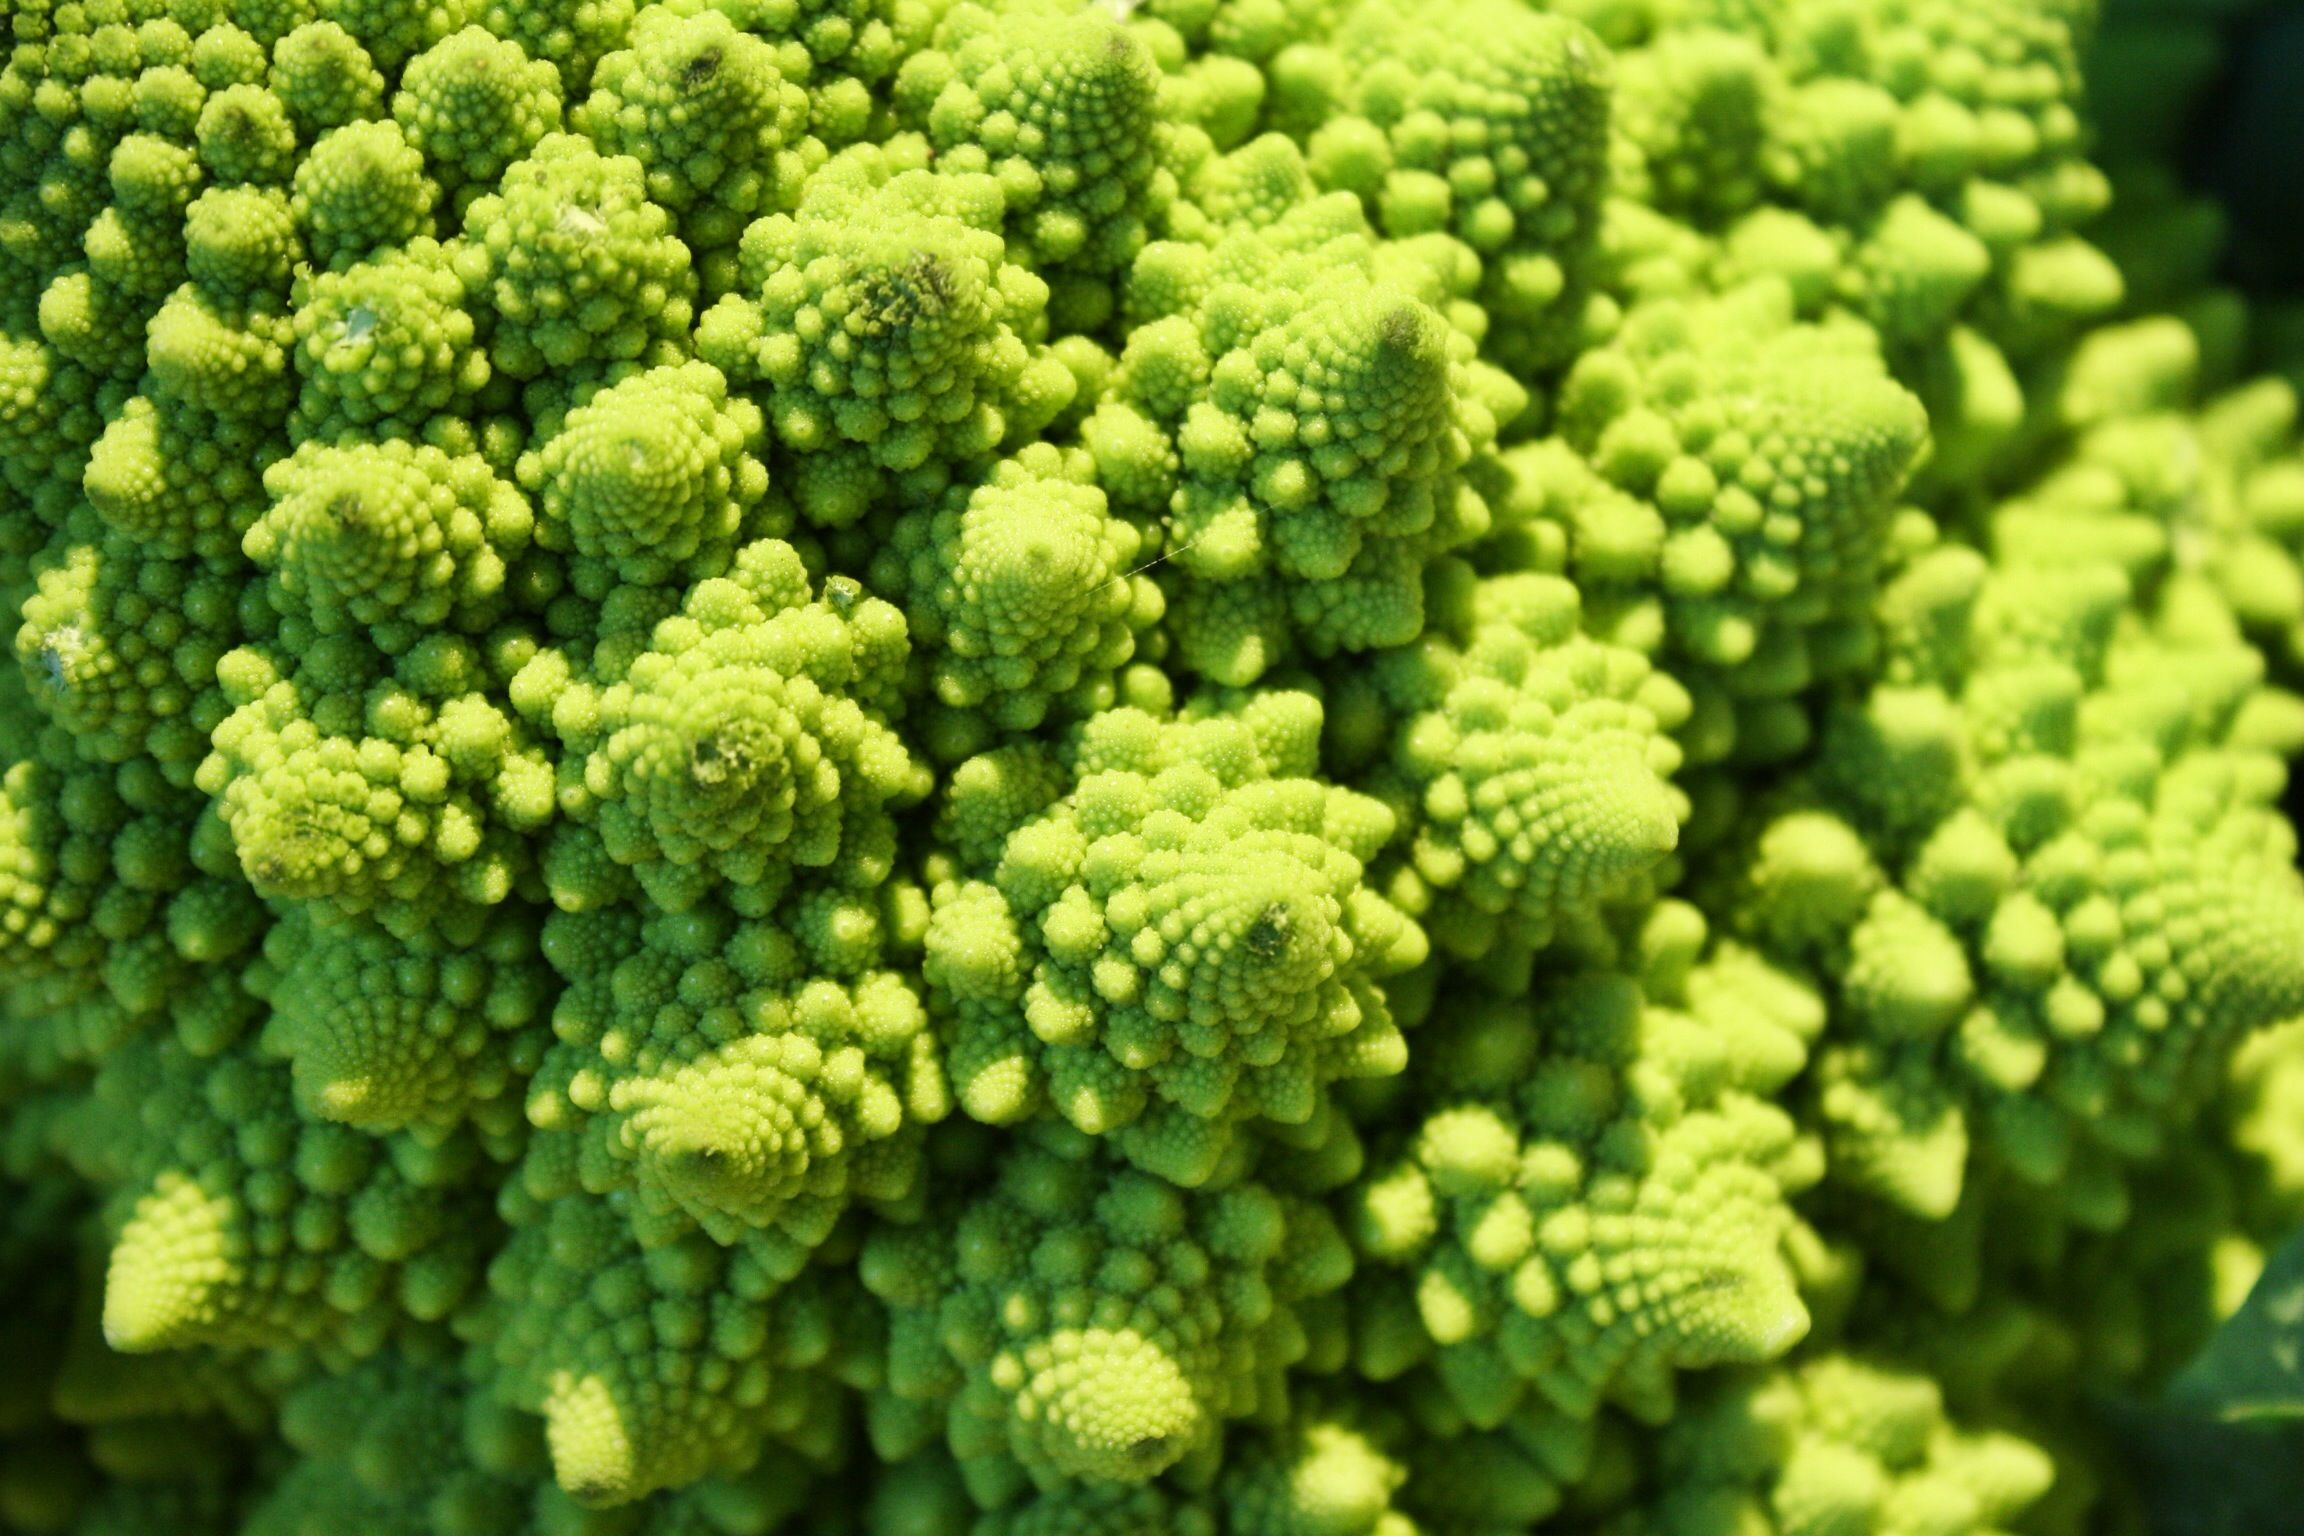 #BroccoliRomanesco at #Eataly #Roma